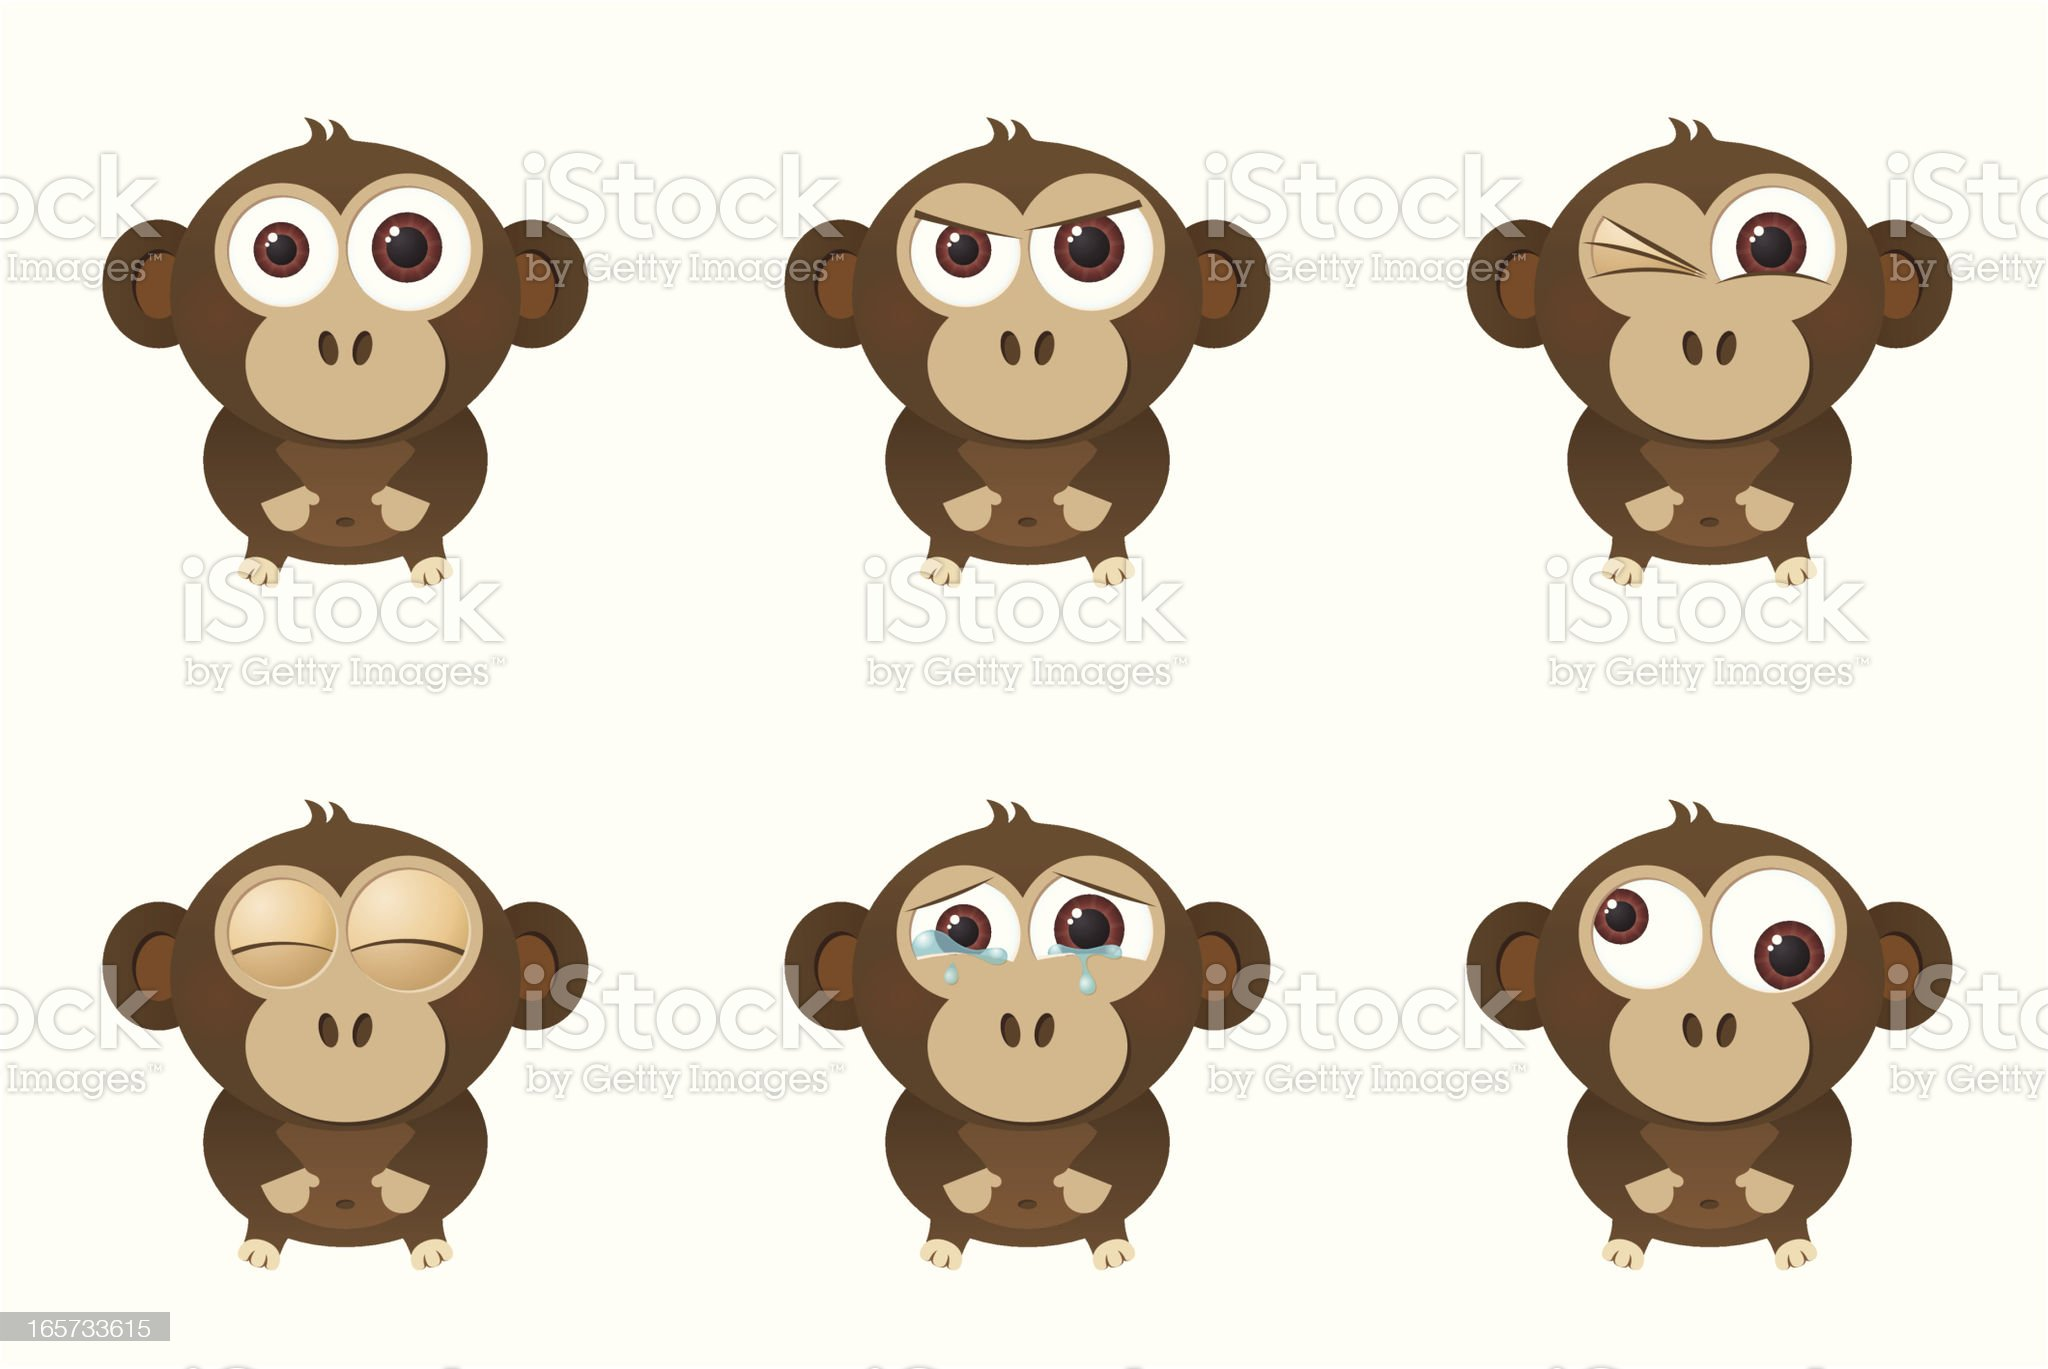 Collection of a big-eyed monkey with different facial expressions royalty-free stock vector art